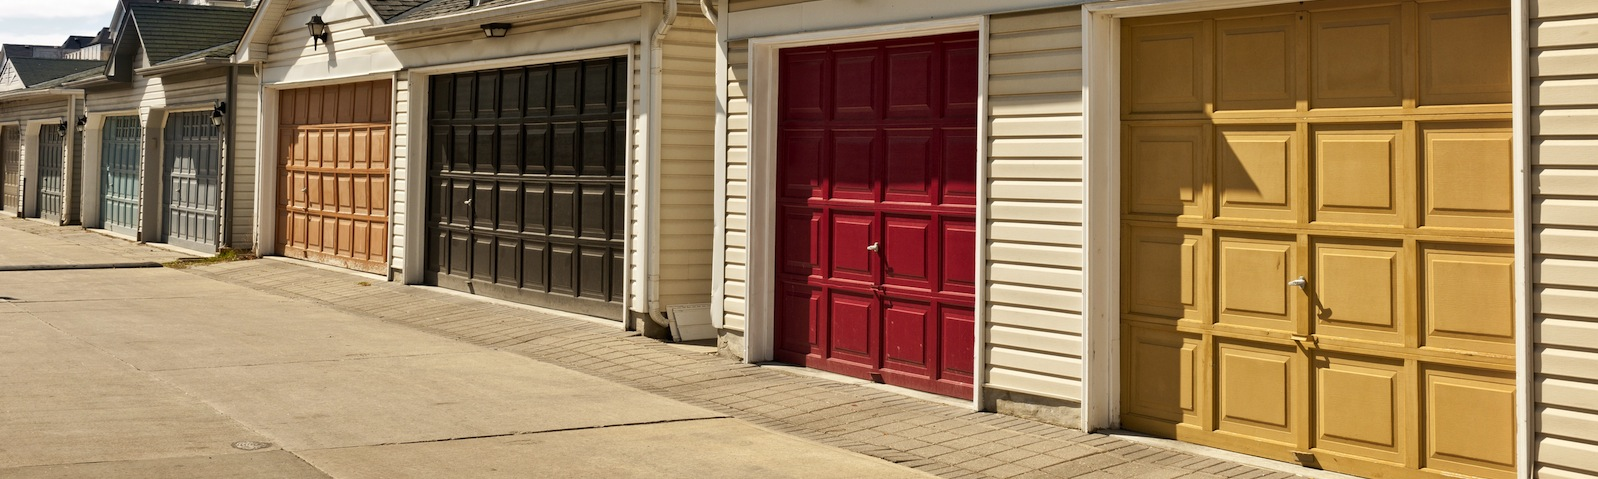 Garage Door Repair Ellicott City MD